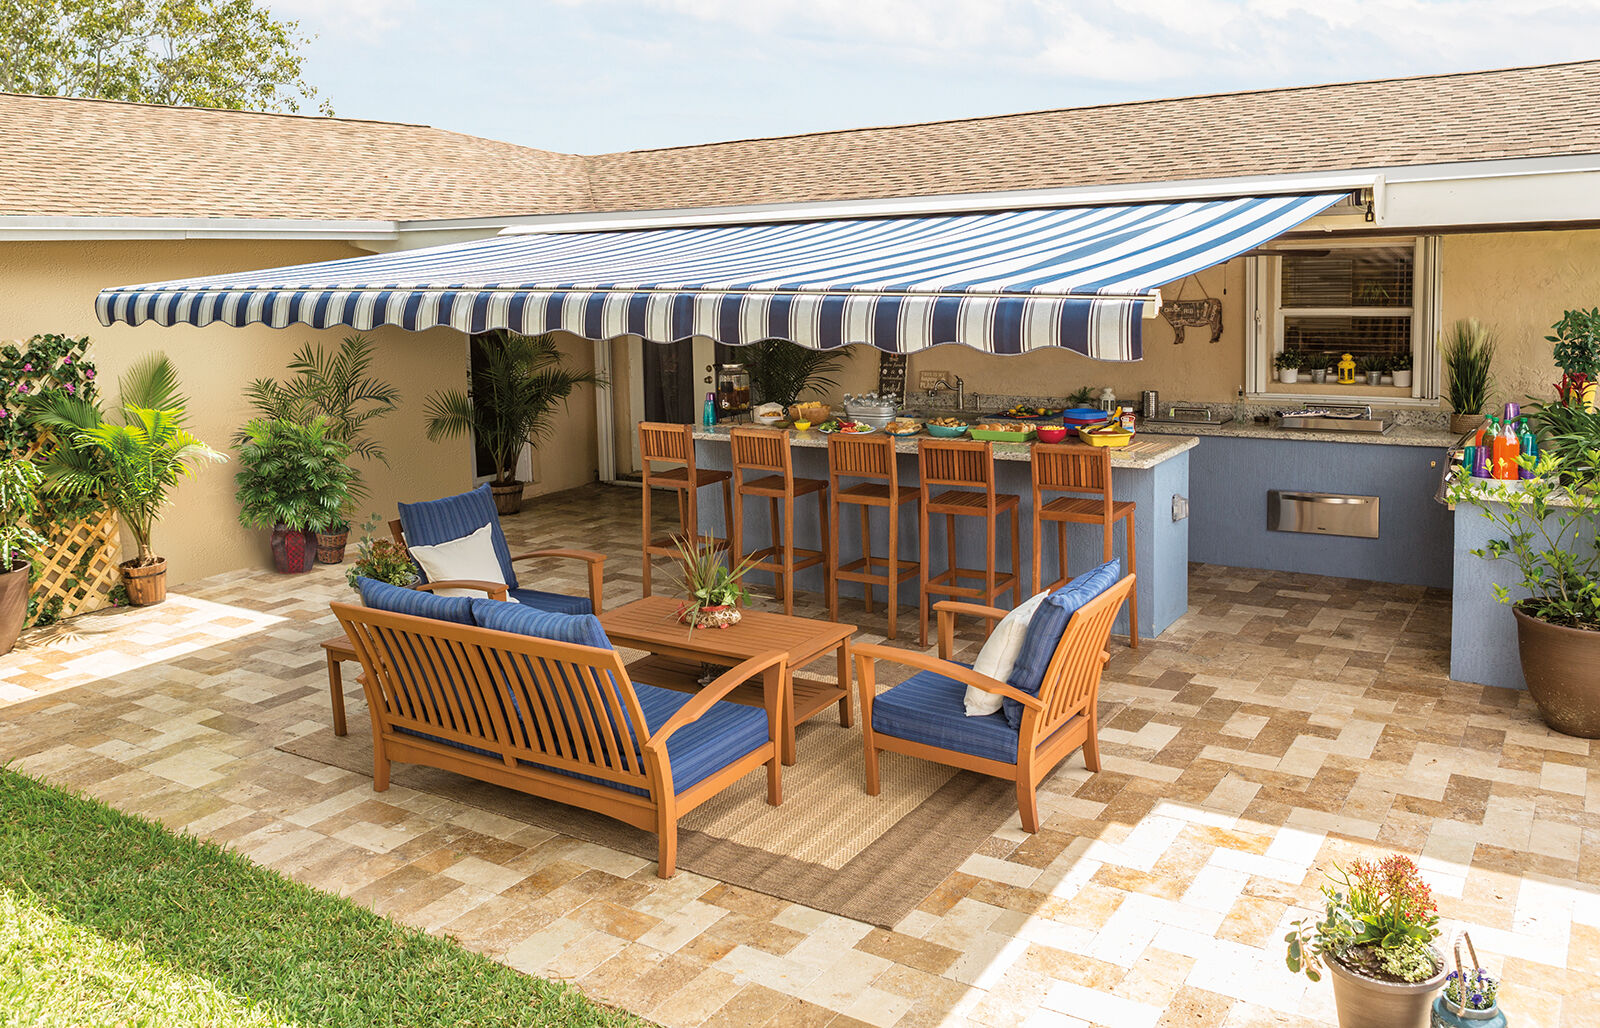 SunSetter Motorized Retractable Awning, 16 X 10 Ft